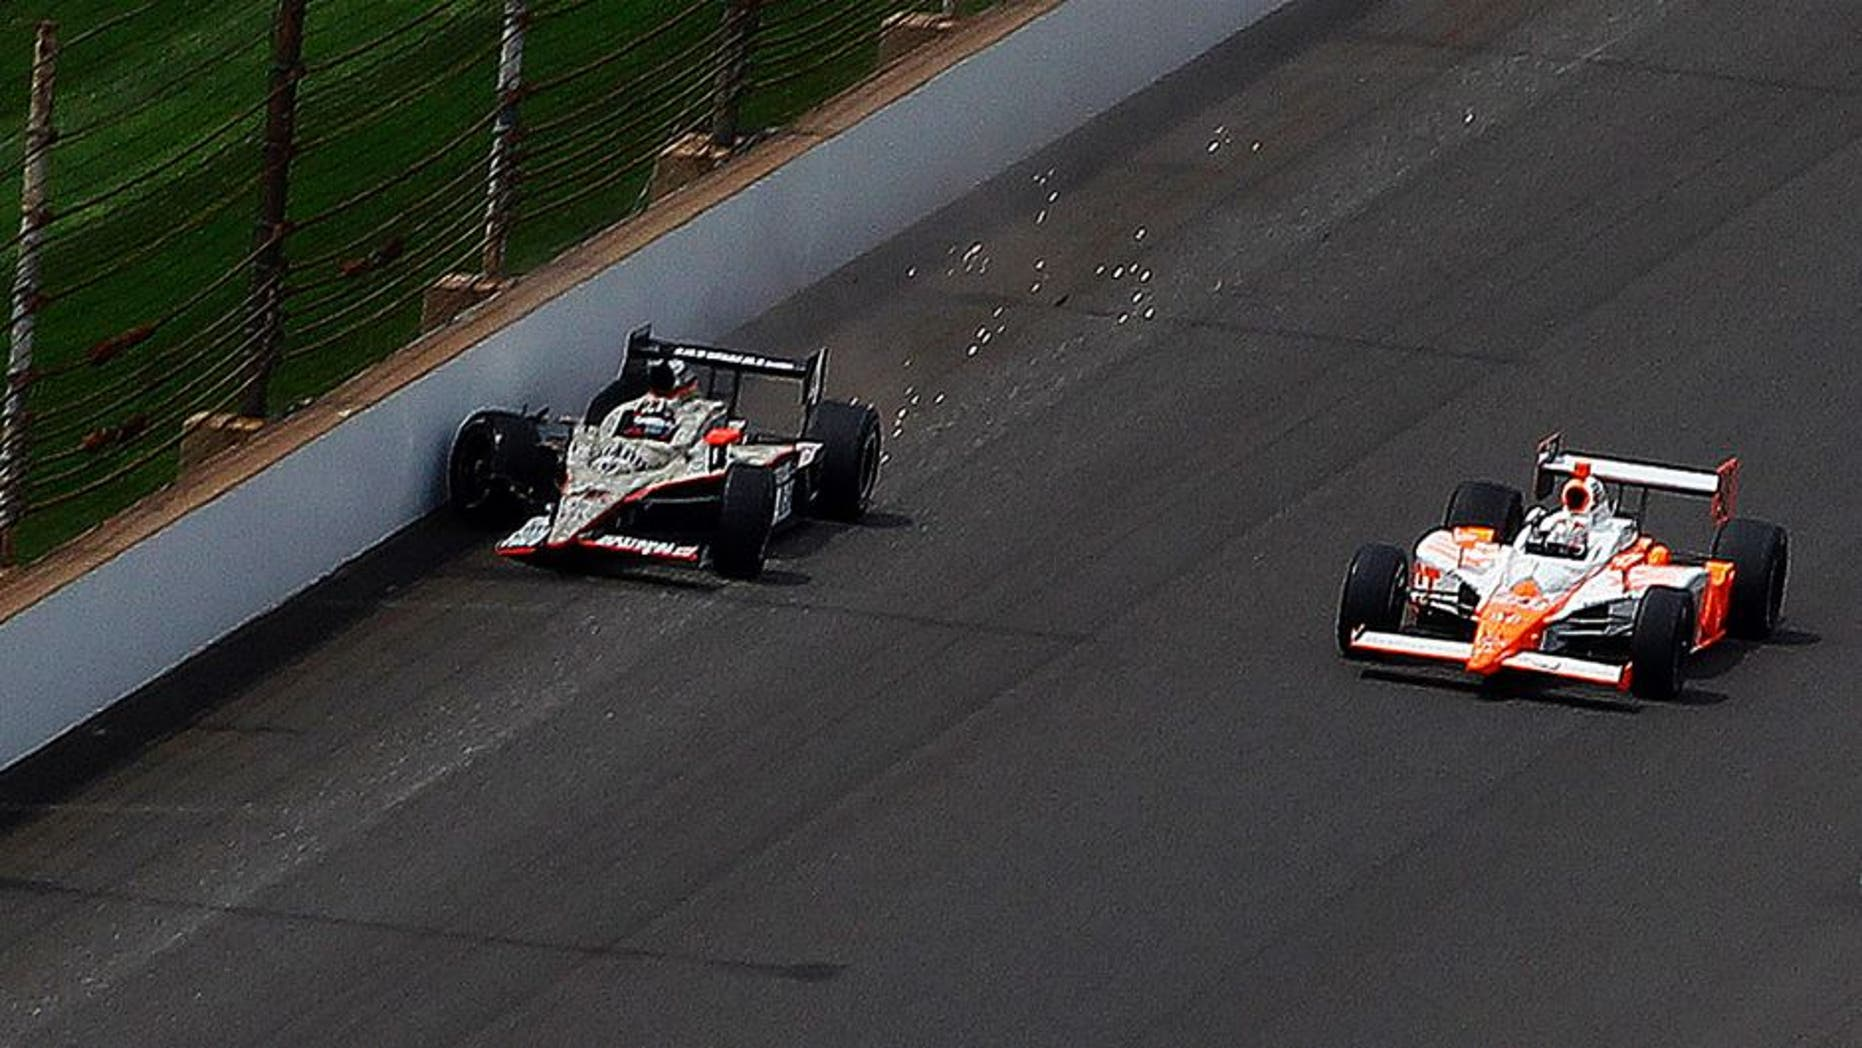 29 May, 2011, Indianapolis, Indiana, USA Dan Wheldon passes the crashed JR Hildebrand for the win